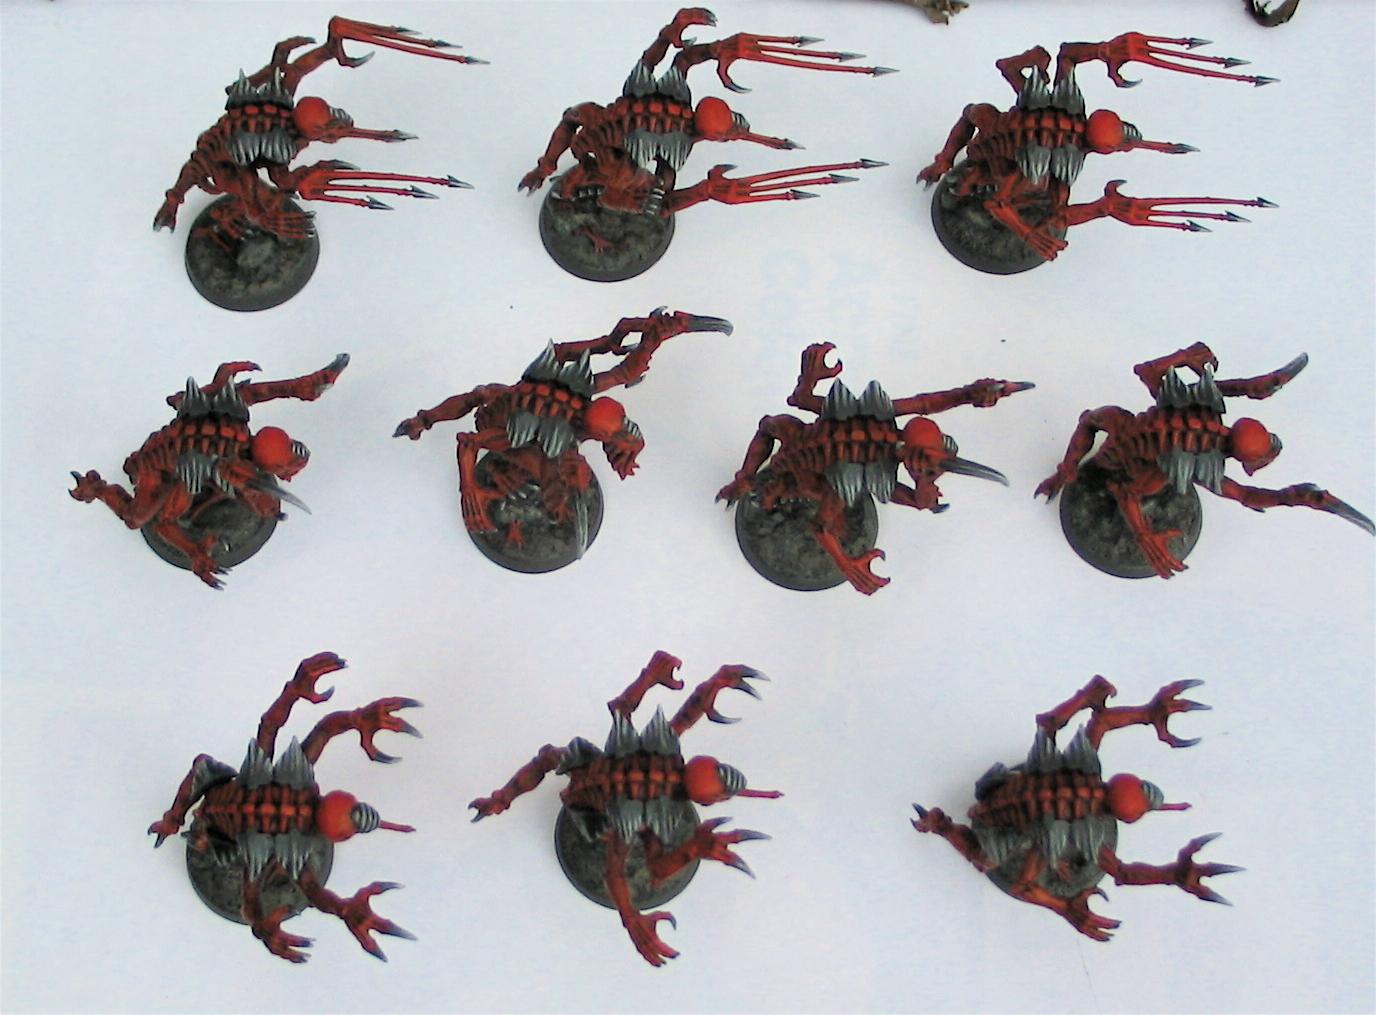 Commission, Conversion, Genestealer, Painted, Tyranids, Ymgarl Genestealers